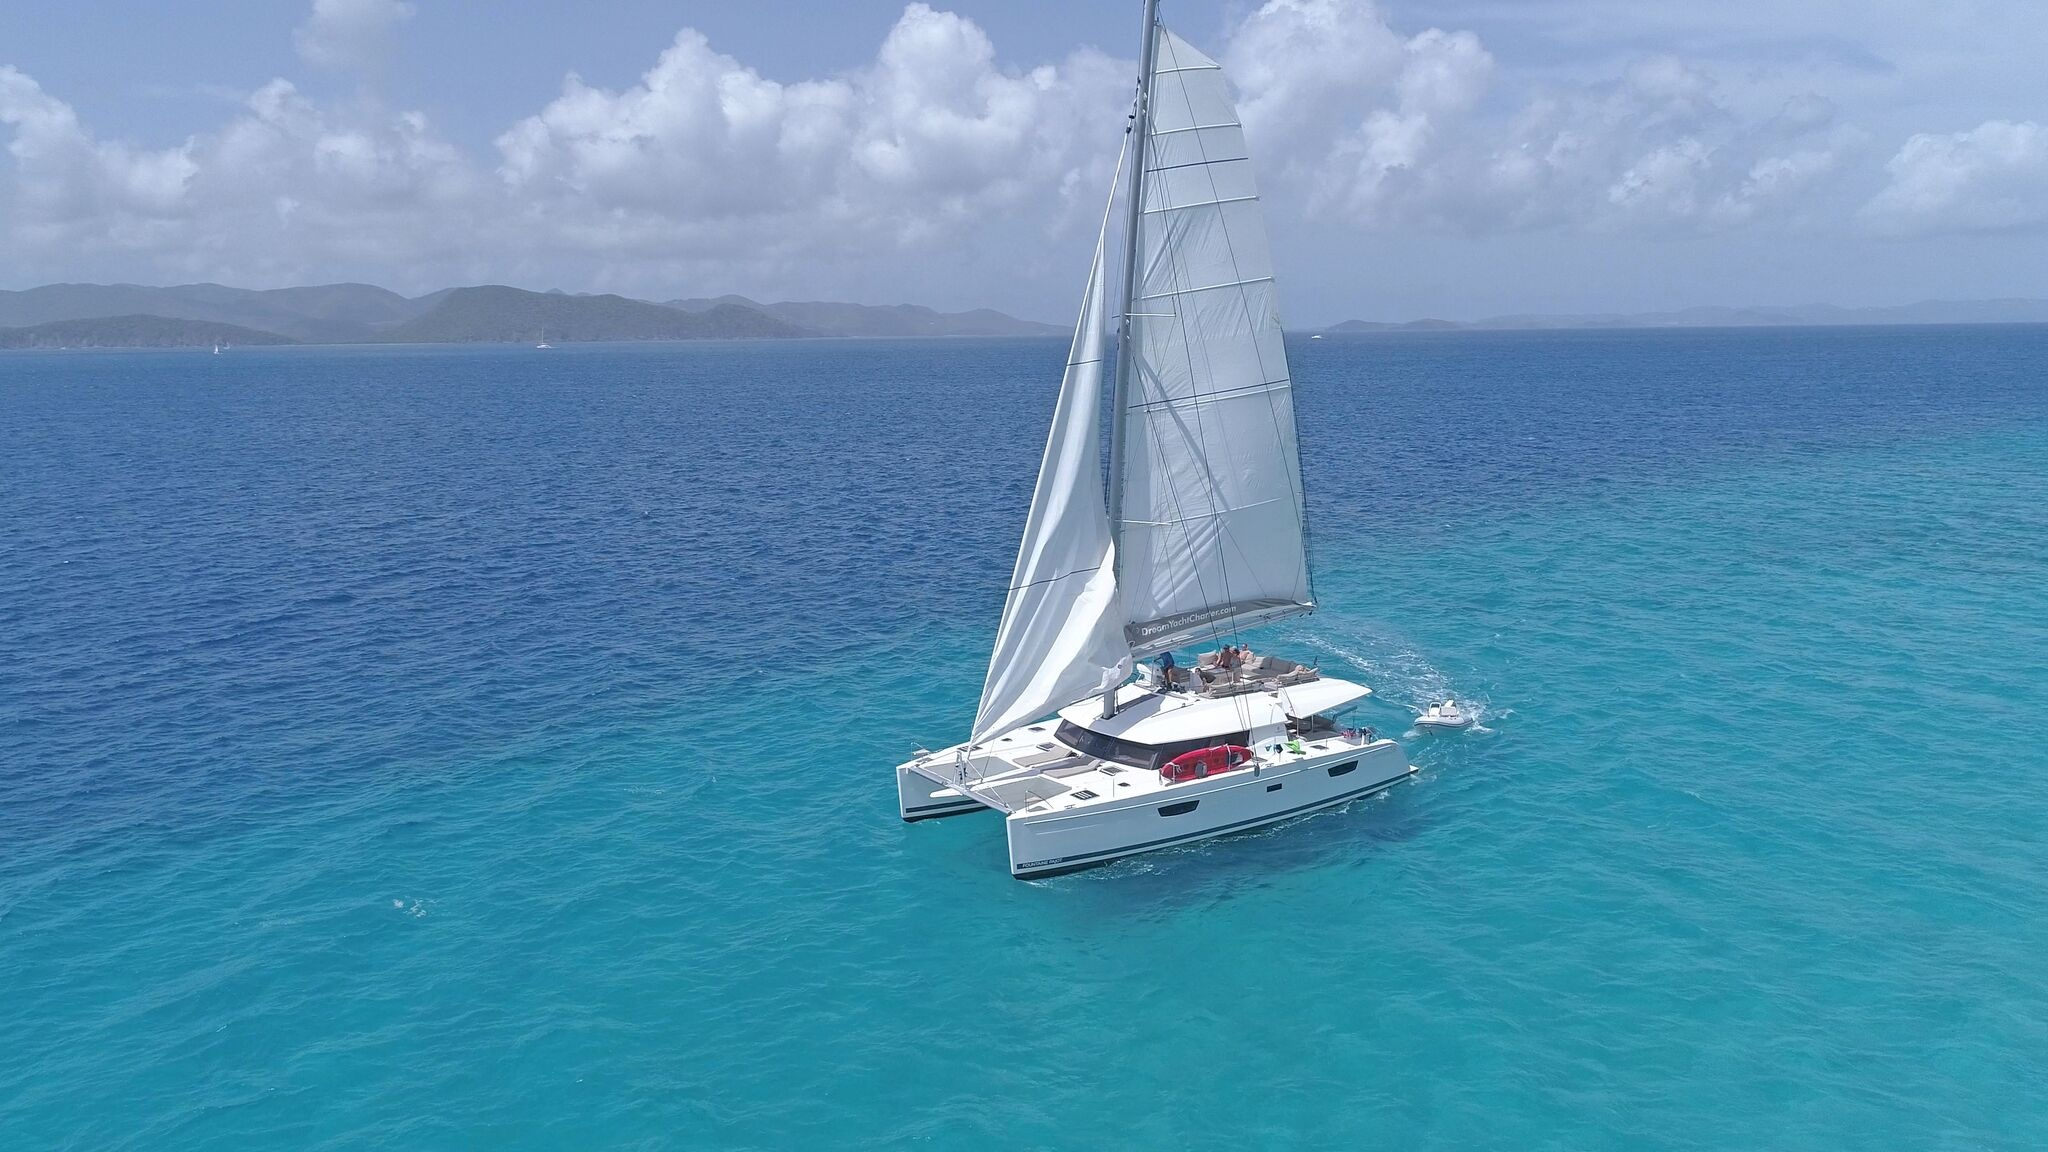 How to Choose the Best Time for a Sailboat Charter Vacation?